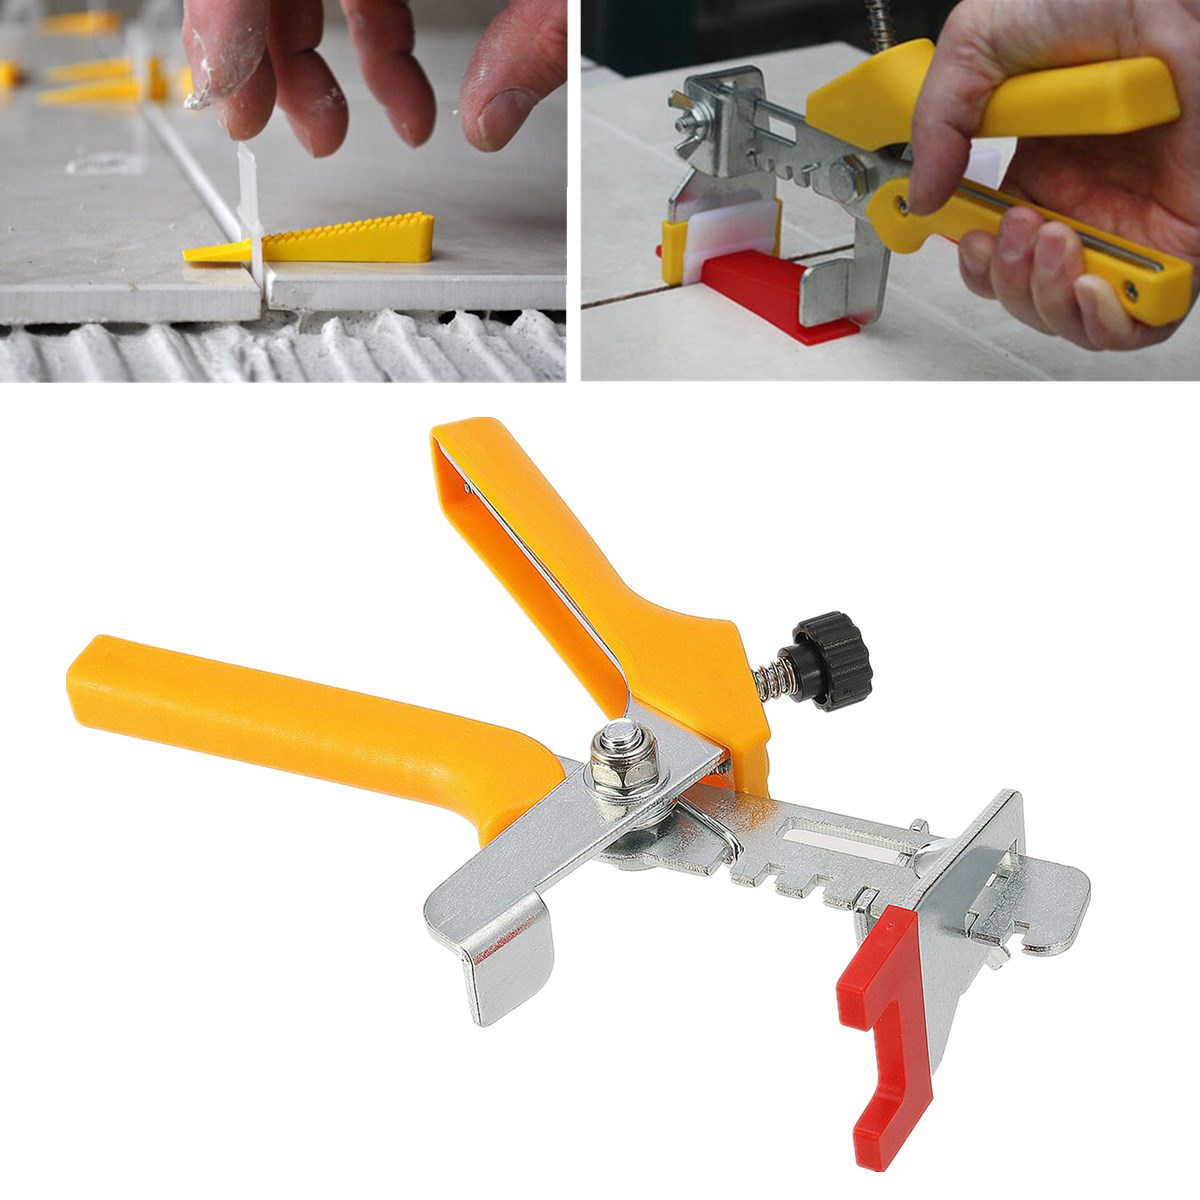 Accurate Tile Leveling Pliers Tiling Locator Tile Leveling System Ceramic Tiles Installation measurement Tool|Construction Tool Parts| |  - title=